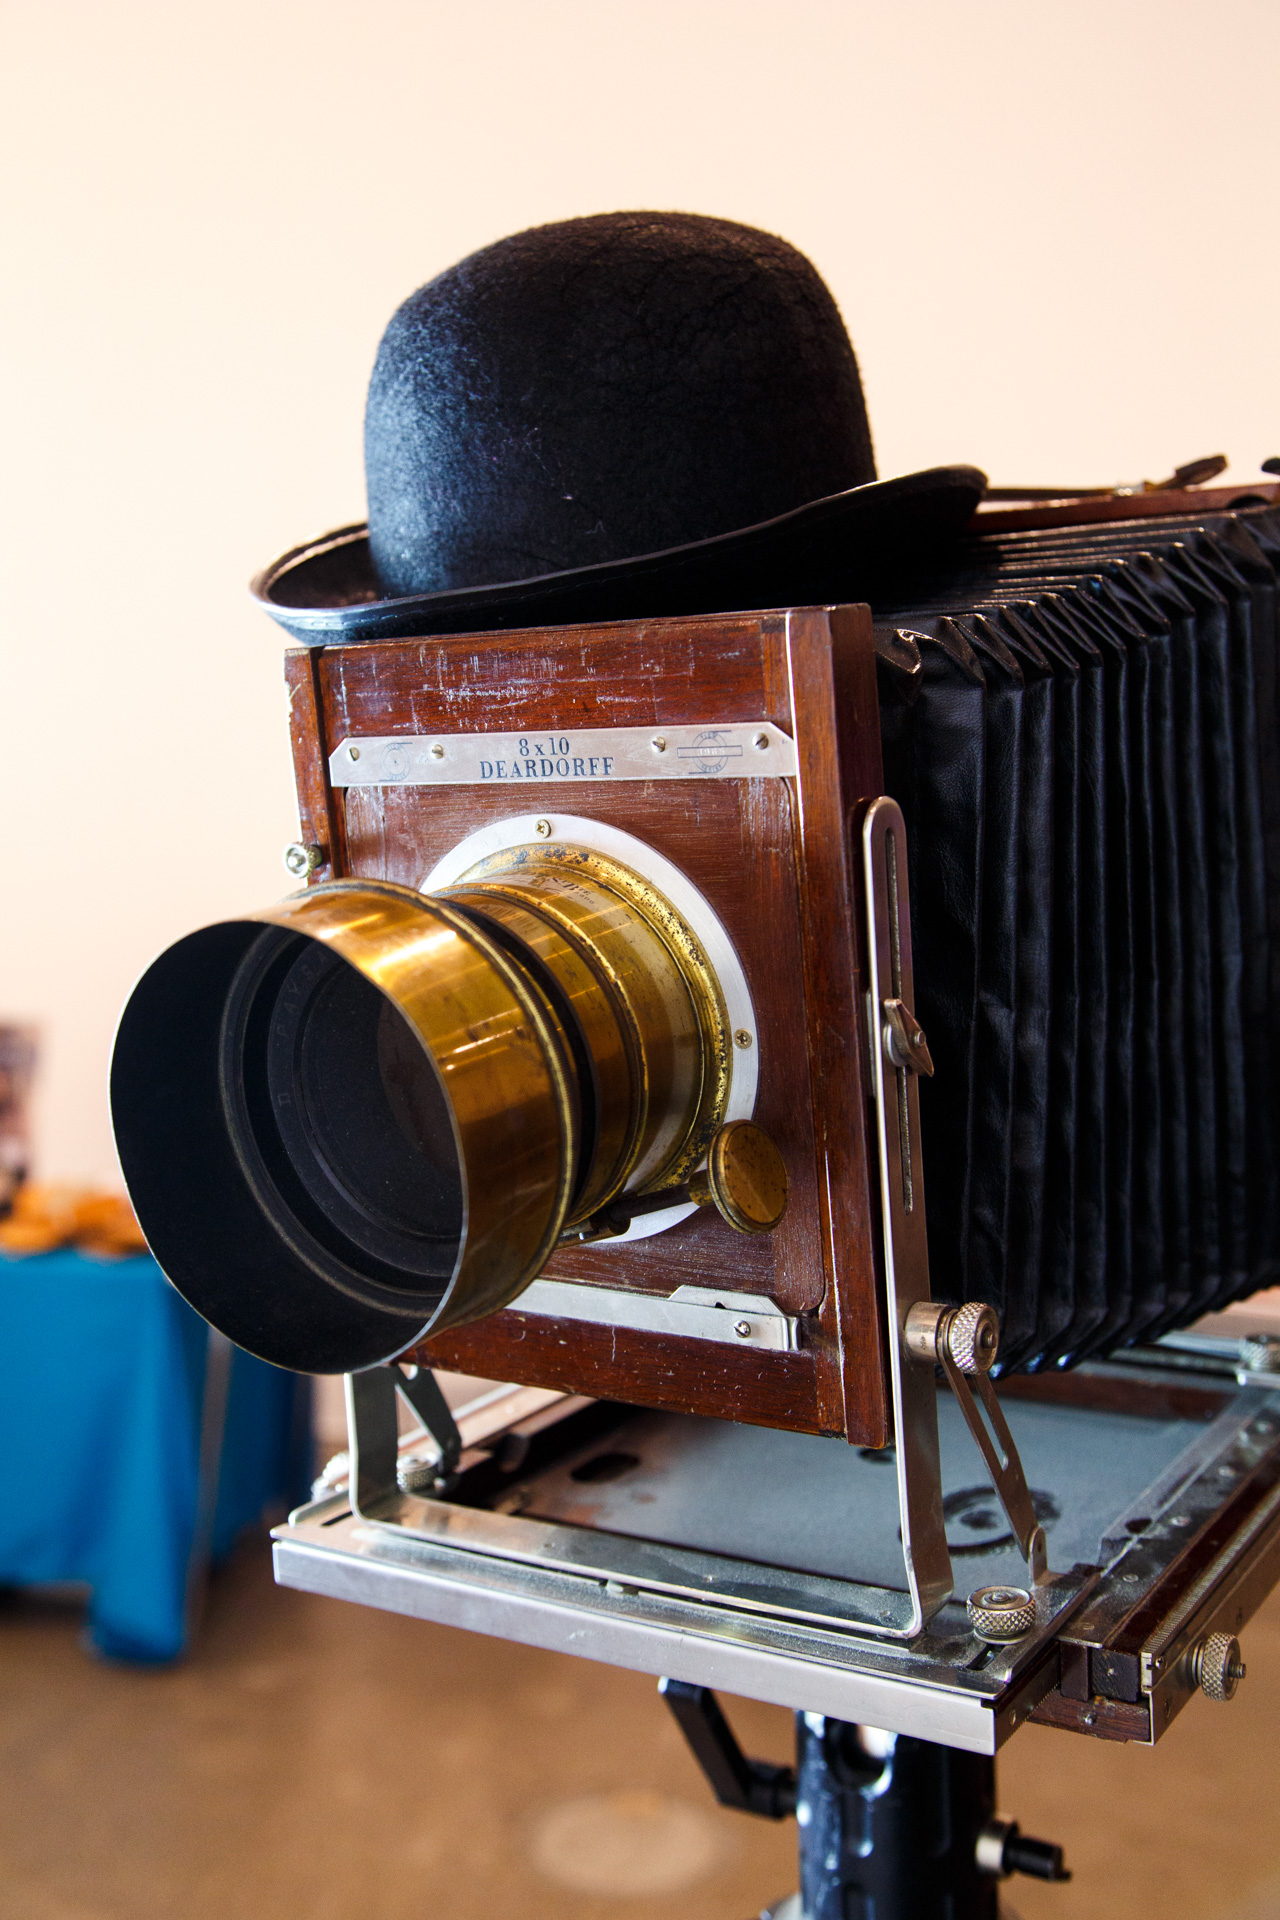 The hat is used as a shutter over the lens when the plate is exposed inside the camera.